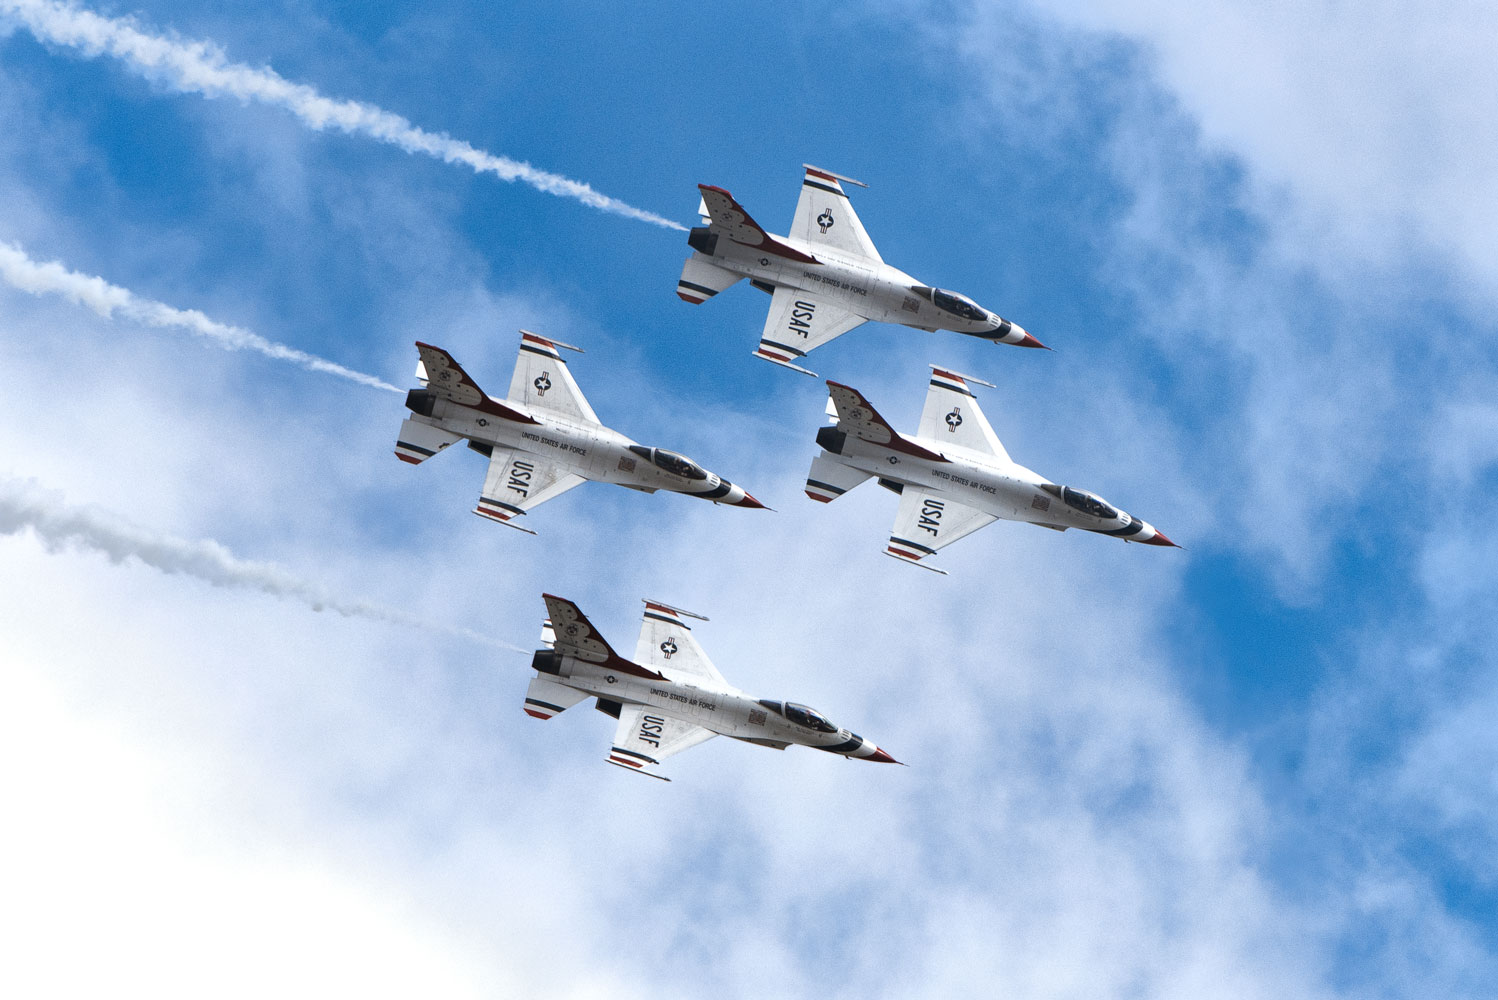 U.S. Air Force Thunderbirds perform an aerial demonstration over Joint Base Andrews, Md., during the 2017 Andrews Air Show.